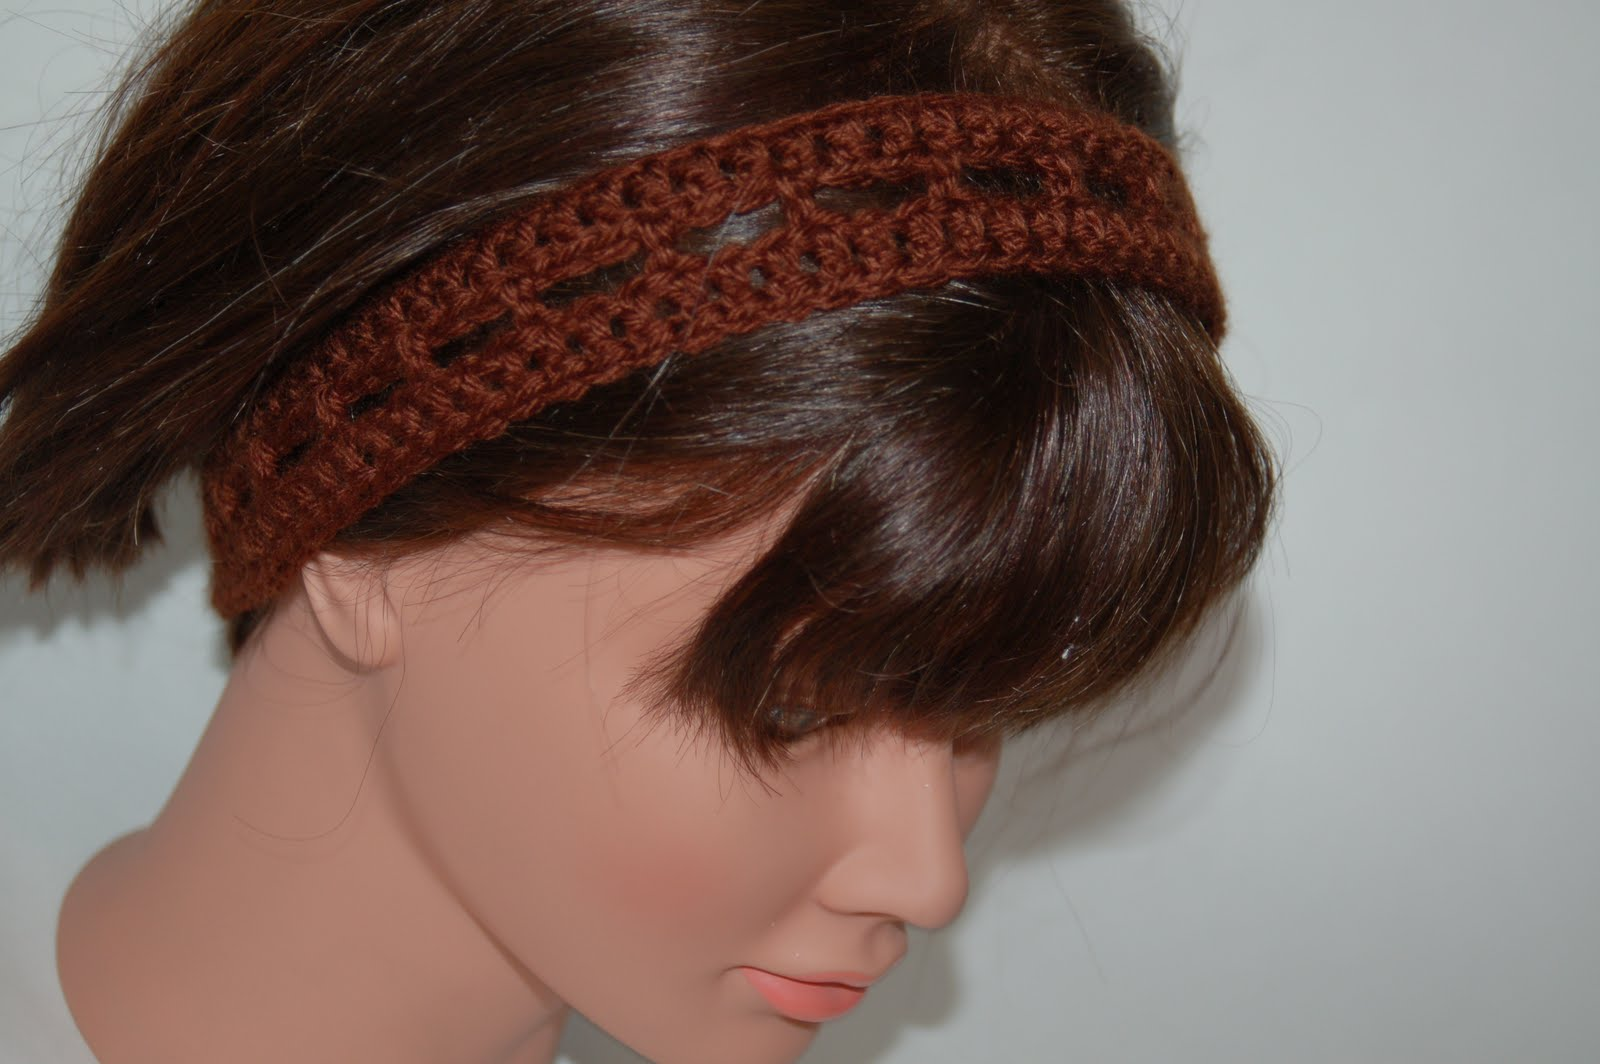 Crocheting A Headband : Living the Craft Life: New Crochet Headband Designs